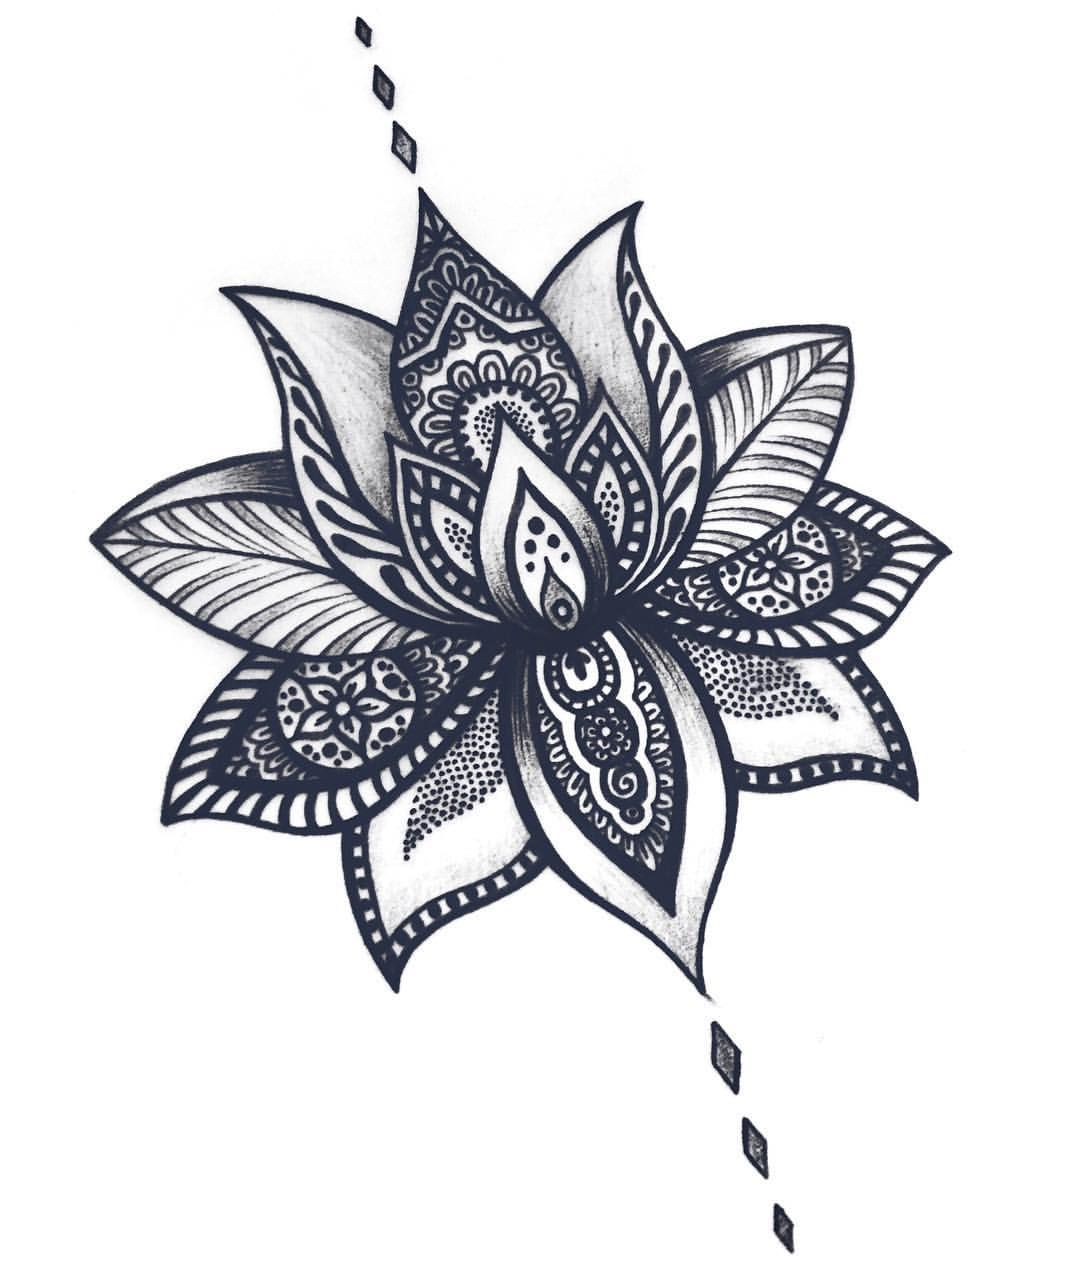 Tattoo design picture - Consulta Esta Foto De Instagram De Helenalloretart 1 244 Me Gusta Lotus Flower Tattoosflower Tattoo Designstattoo